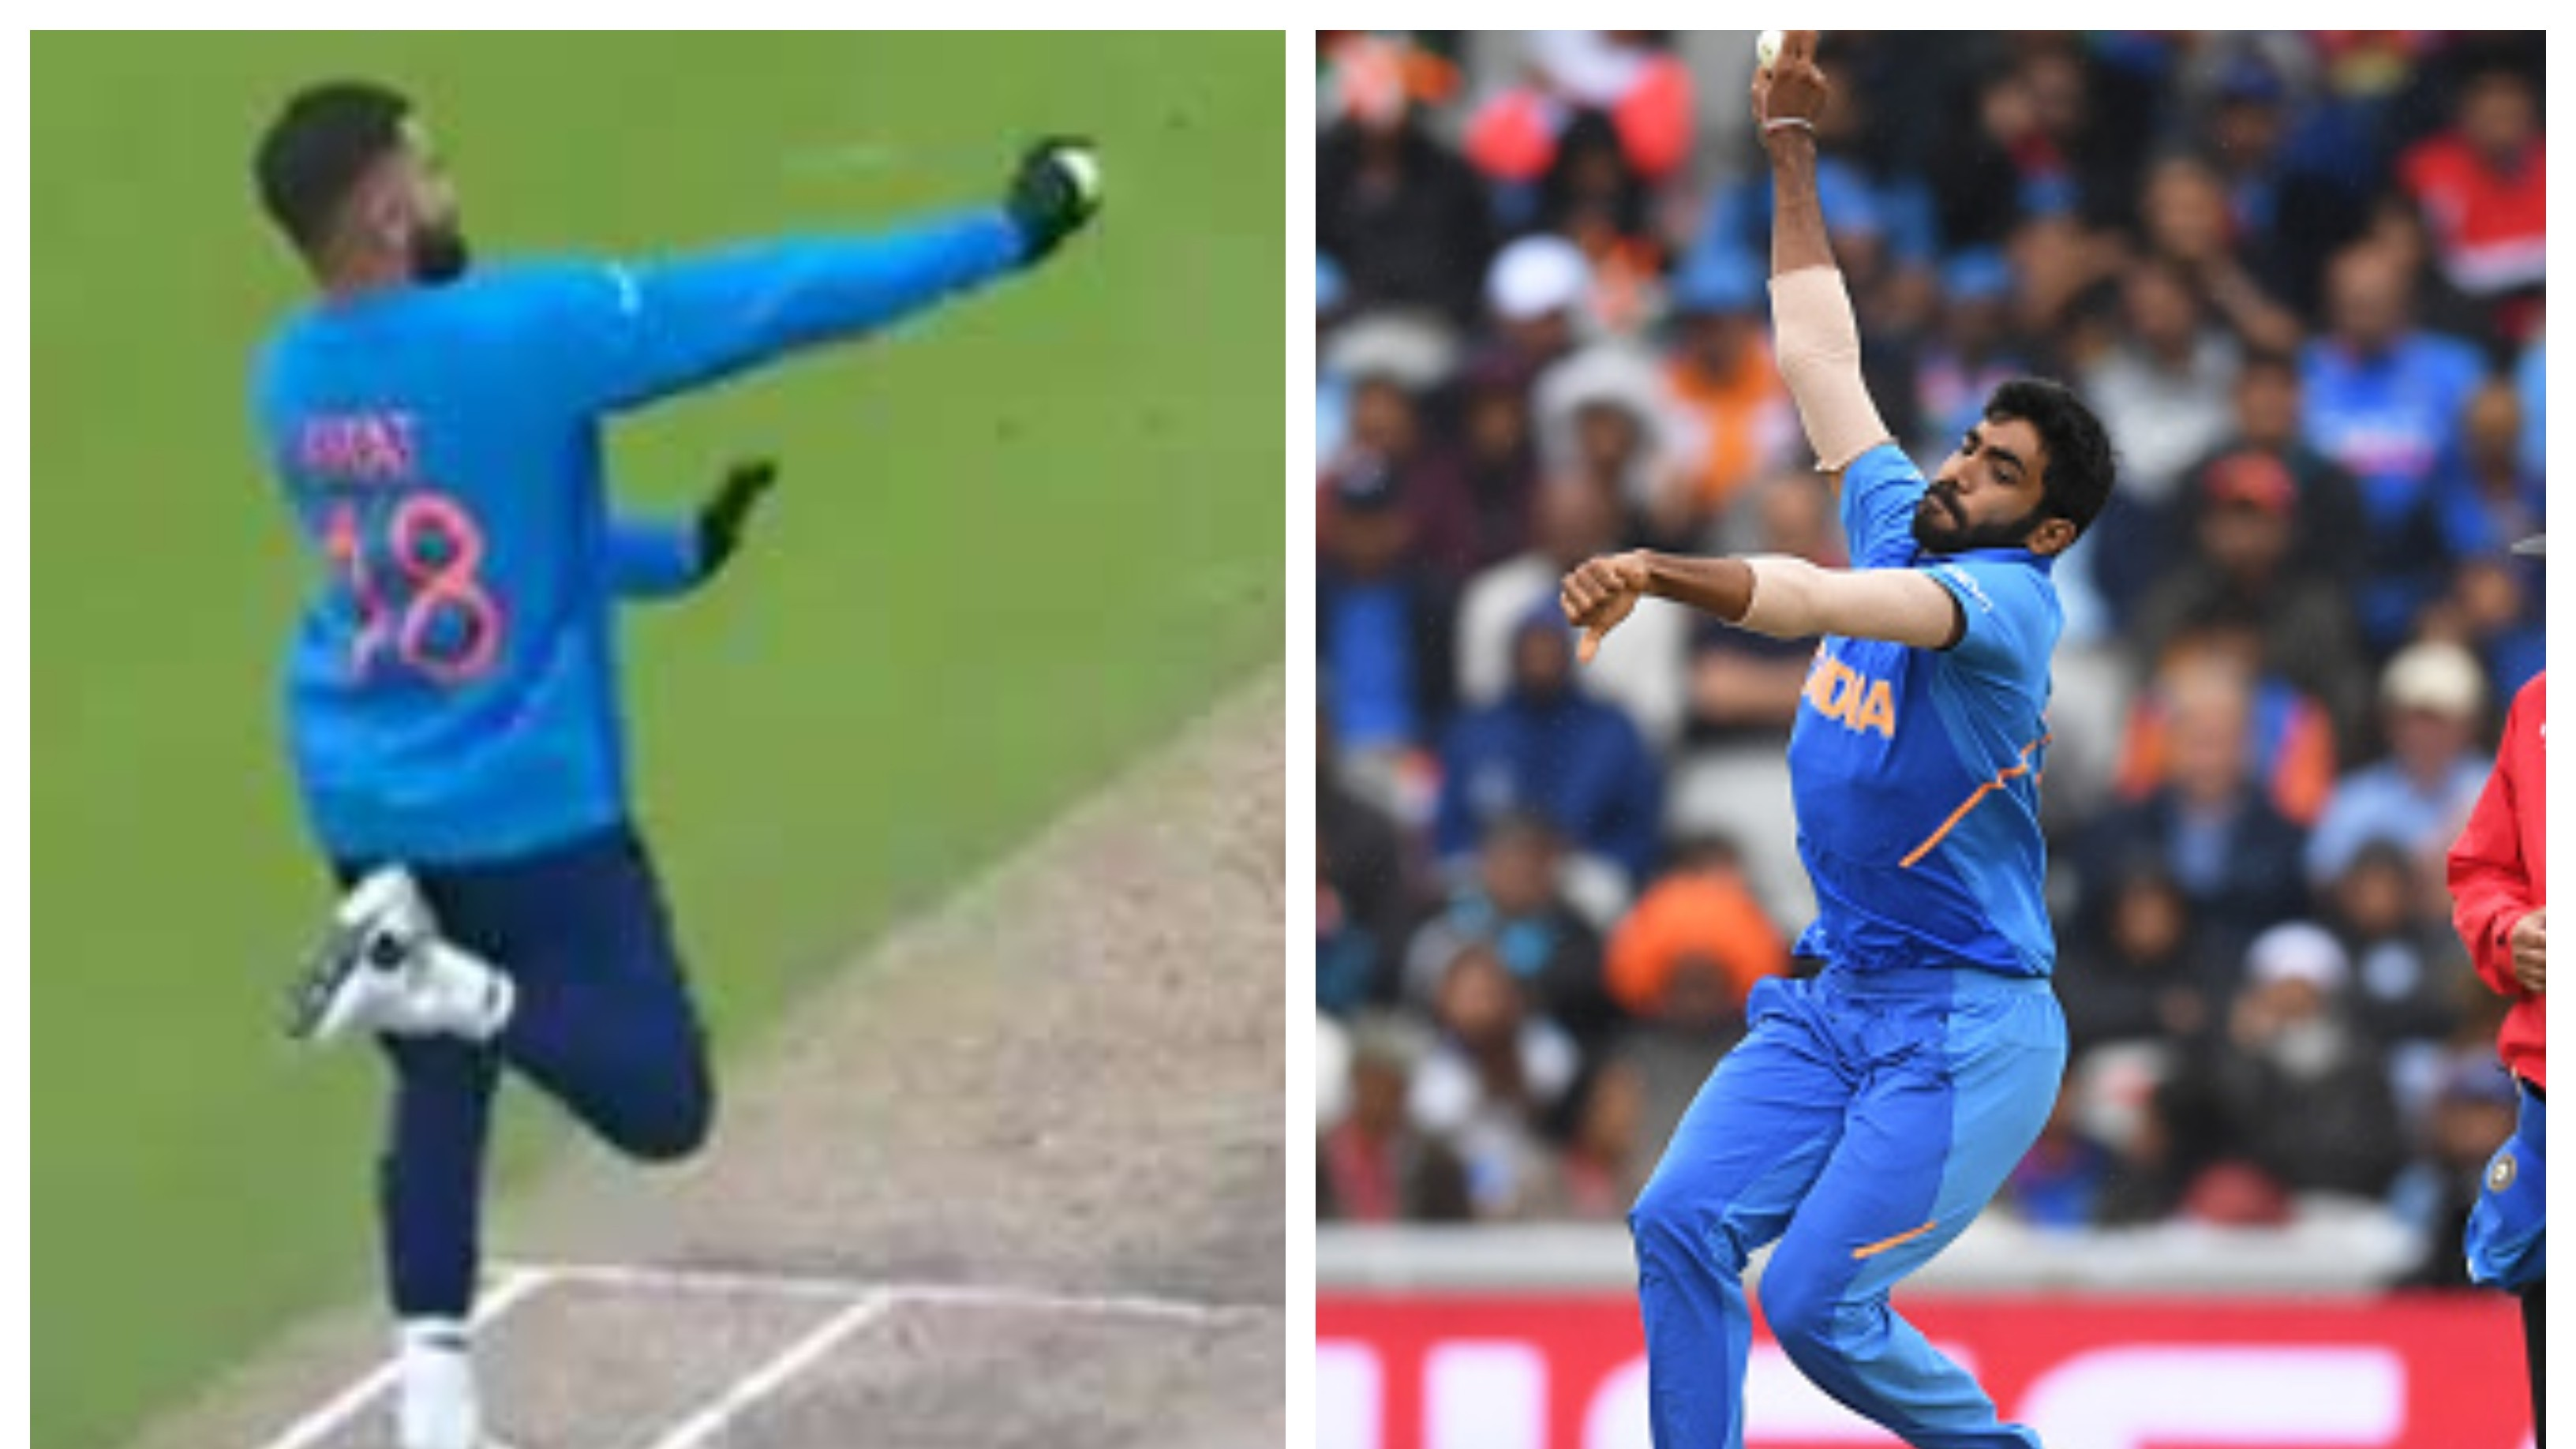 CWC 2019: WATCH – Virat Kohli imitates Jasprit Bumrah's unconventional bowling action